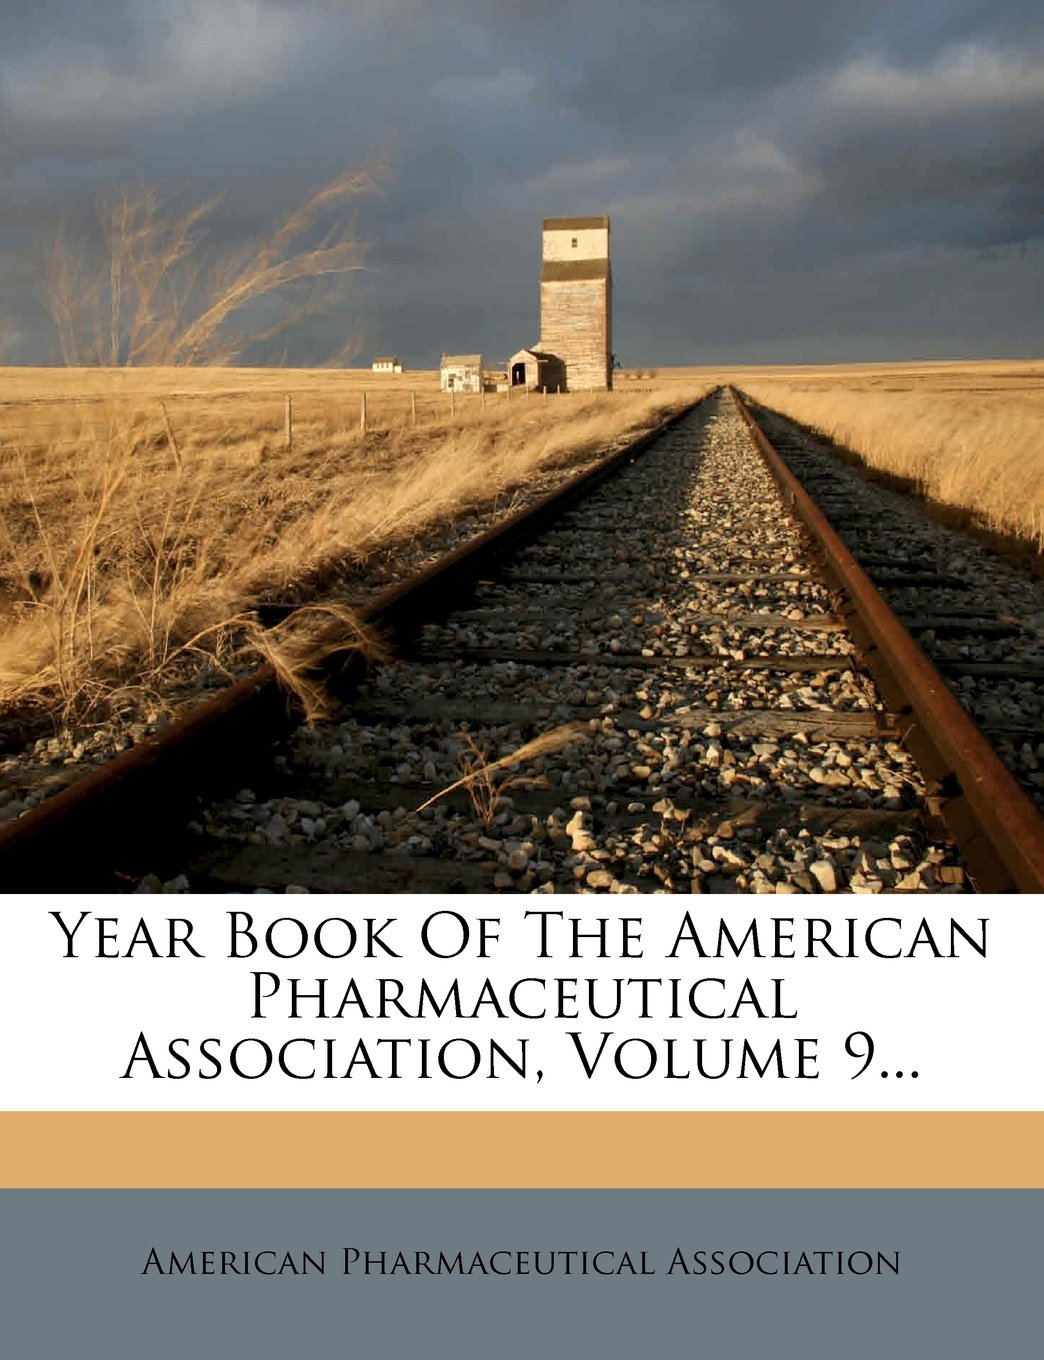 Year Book Of The American Pharmaceutical Association, Volume 9... PDF